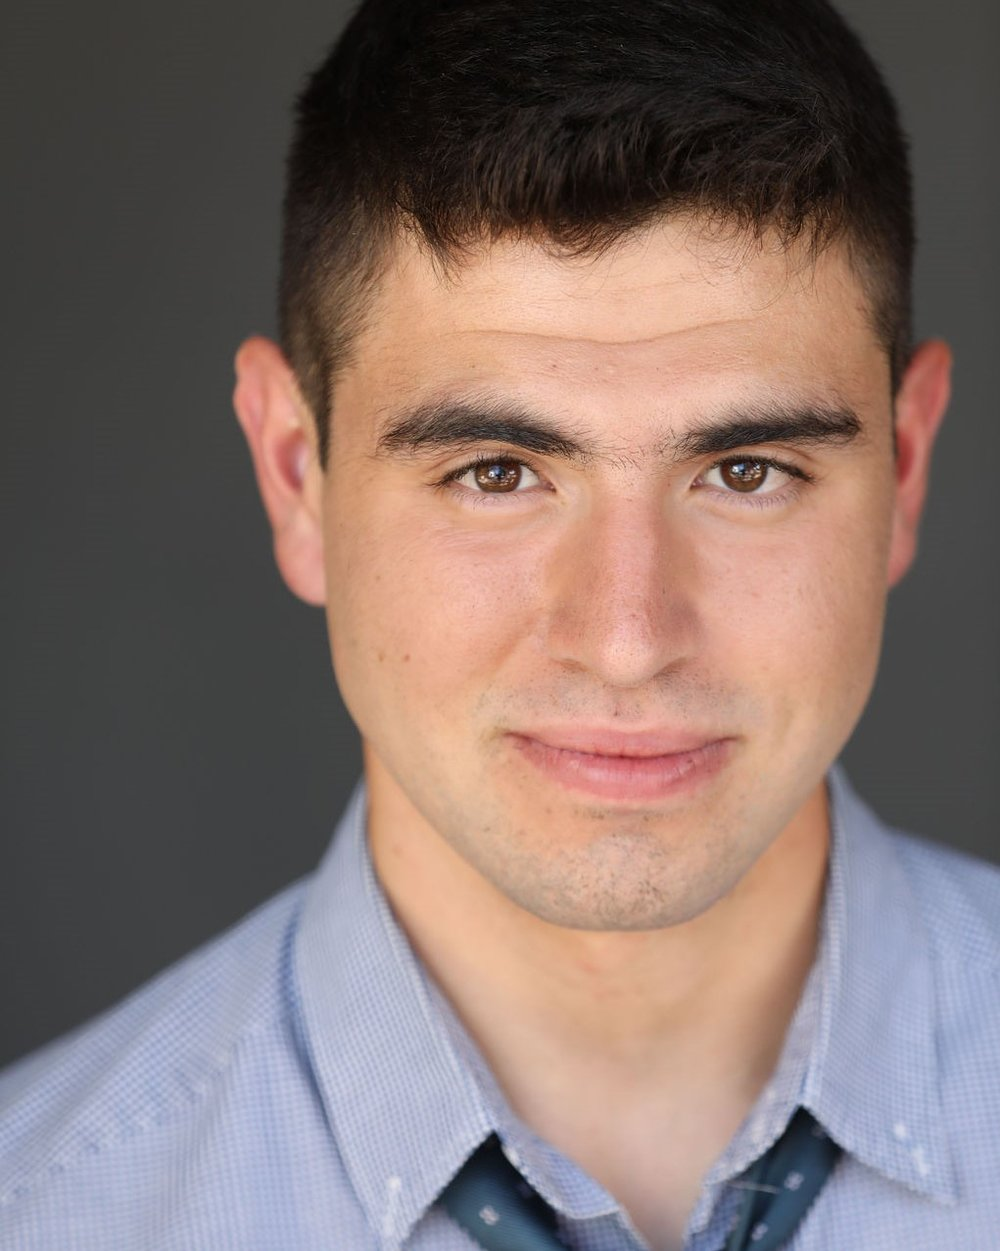 Roberto is ecstatic to be making his debut with Theatre for a Small Space! He was born in Florida, raised in New York, found his love for theatre in Texas, honed it in Massachusetts, and feels very lucky to now be pursuing it in sunny California. He is a recent graduate from Emerson College with a BFA in Theatre and Performance. His favorite Boston credits include  Macbeth  (Banquo),  Hamlet  (Rosencrantz),  The Zoo Story  (Jerry),  The OK Diaries  (Evan), and a handful of Emerson productions; as well as several short and student films. He can also be seen playing Lodovico in Long Beach Shakespeare's production of  Othello  later this month. He is eager to step up to a new challenge with Caliban, and is grateful to all his friends, family, and cast mates for their support.